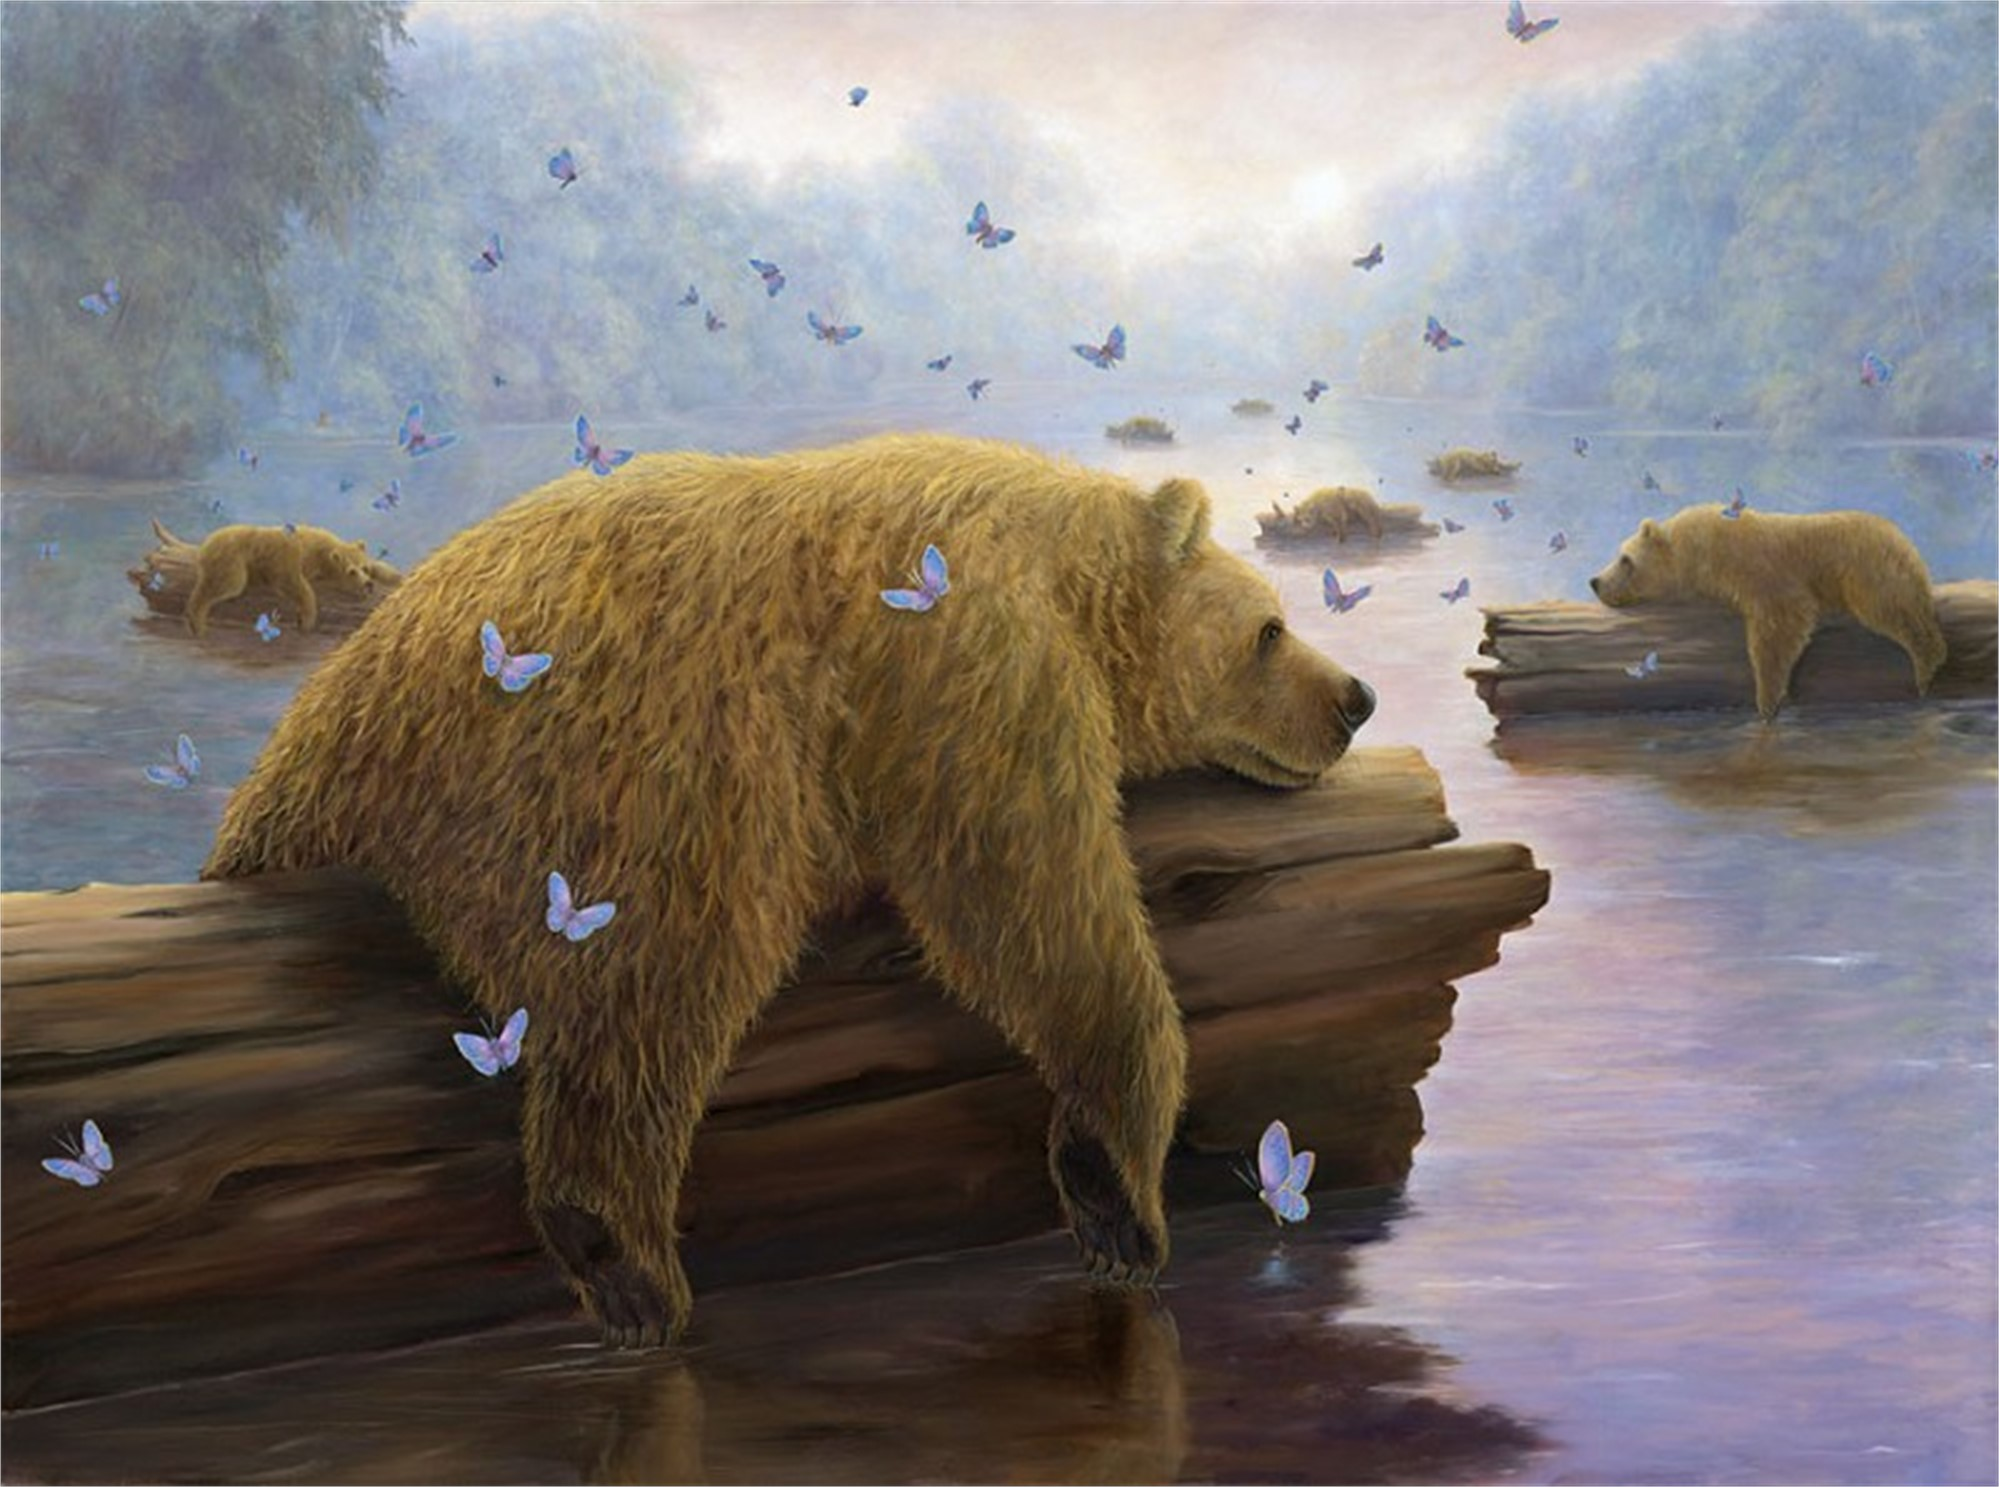 Drifters (Small Works) by Robert Bissell